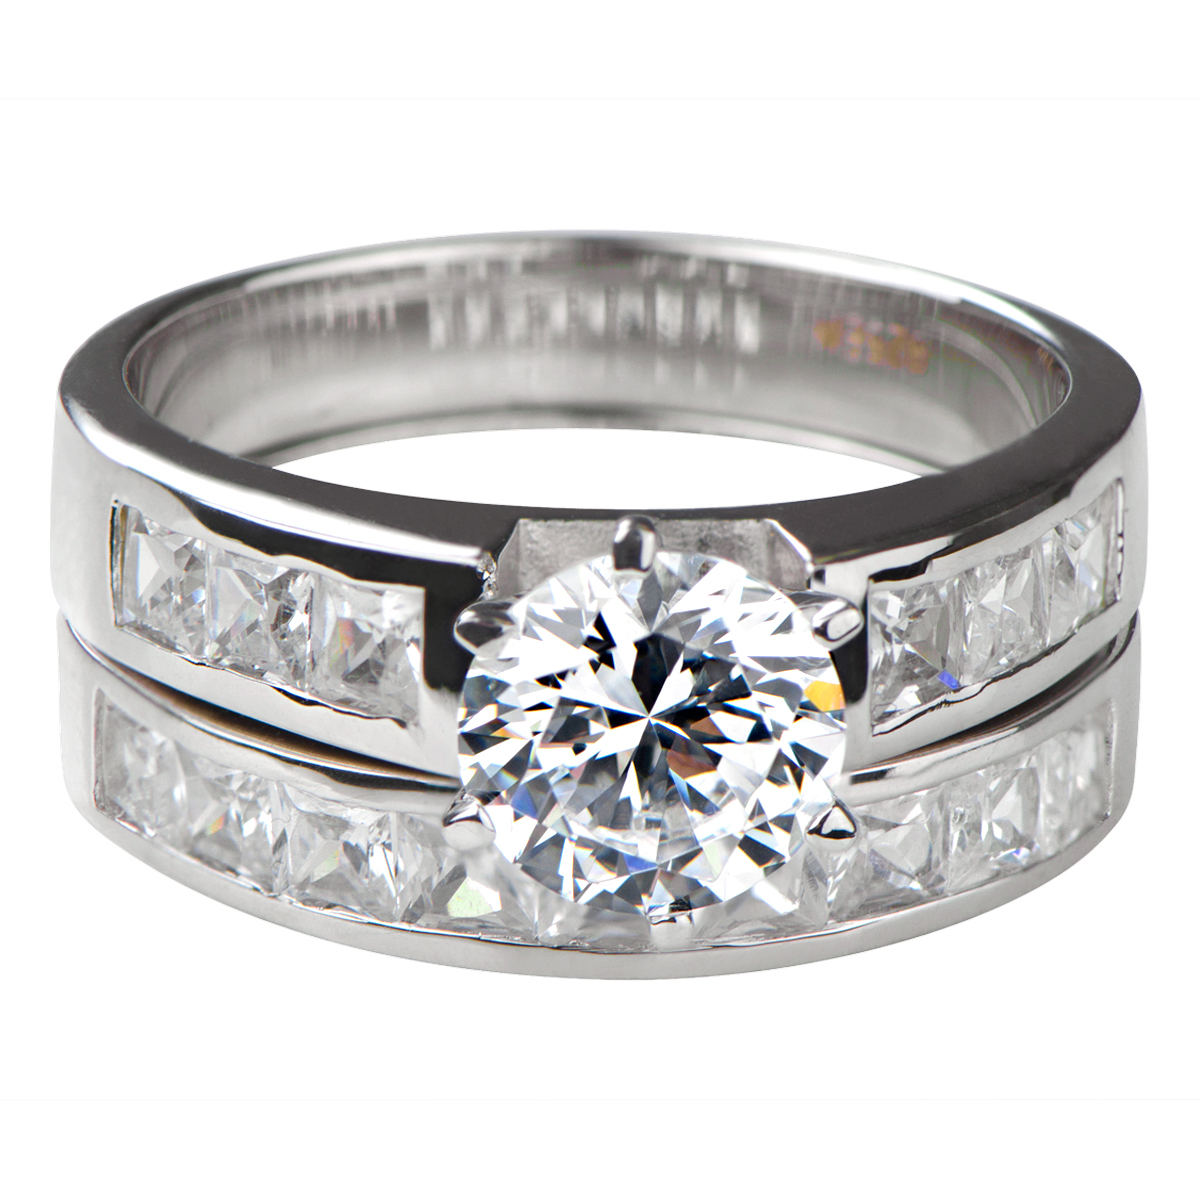 Zoras Round Cut CZ Wedding Ring Set